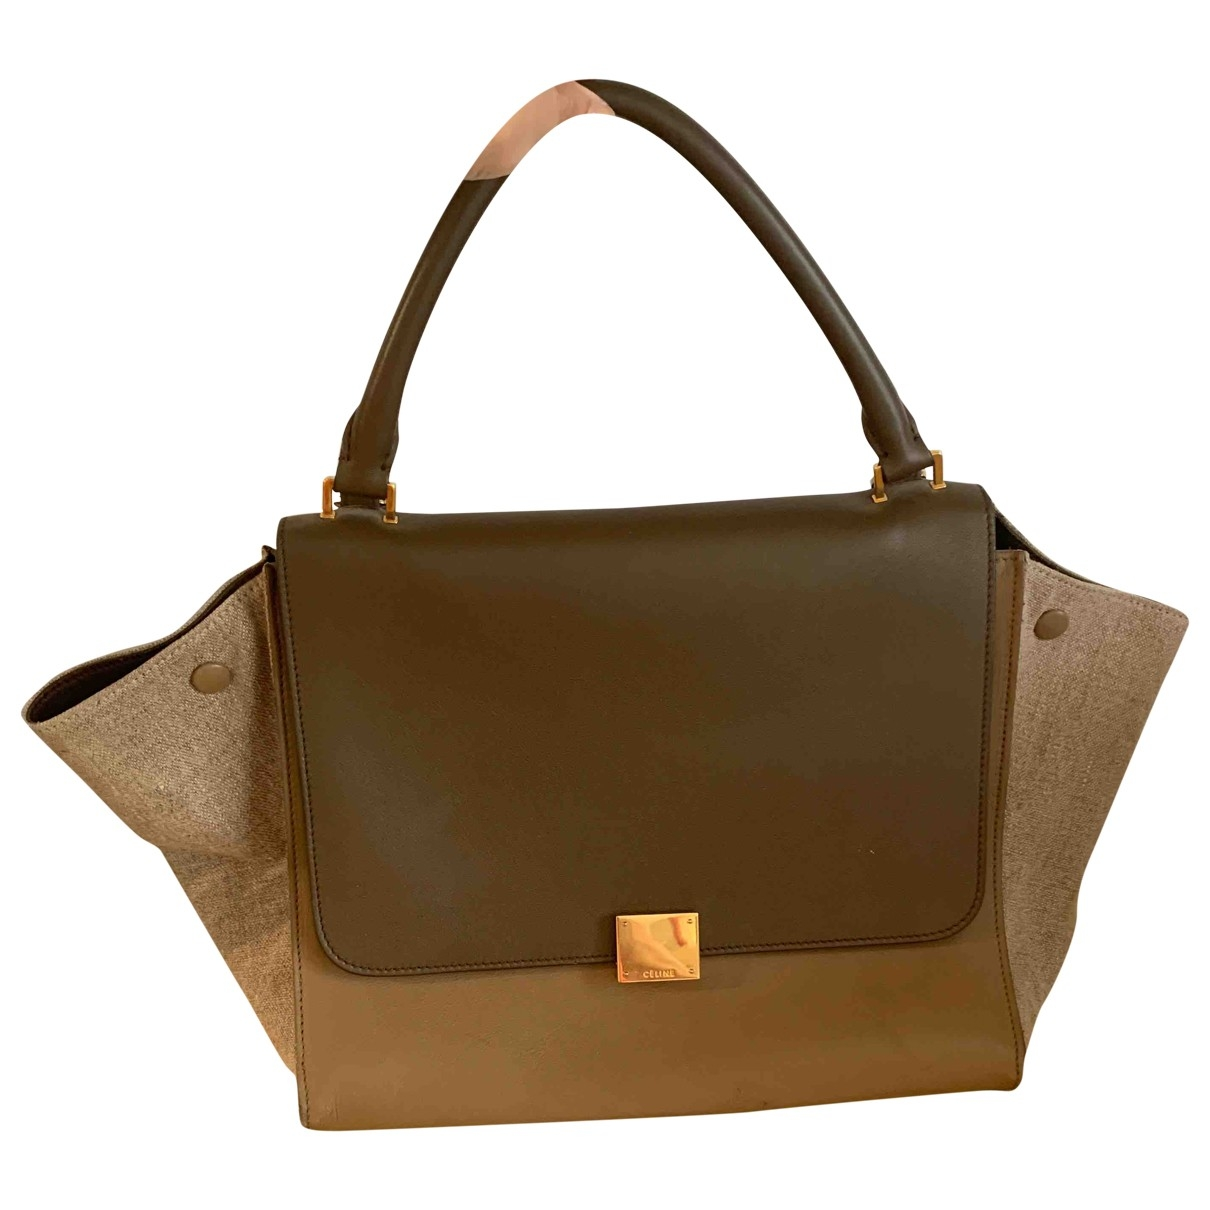 Celine Classic Camel Leather handbag for Women \N